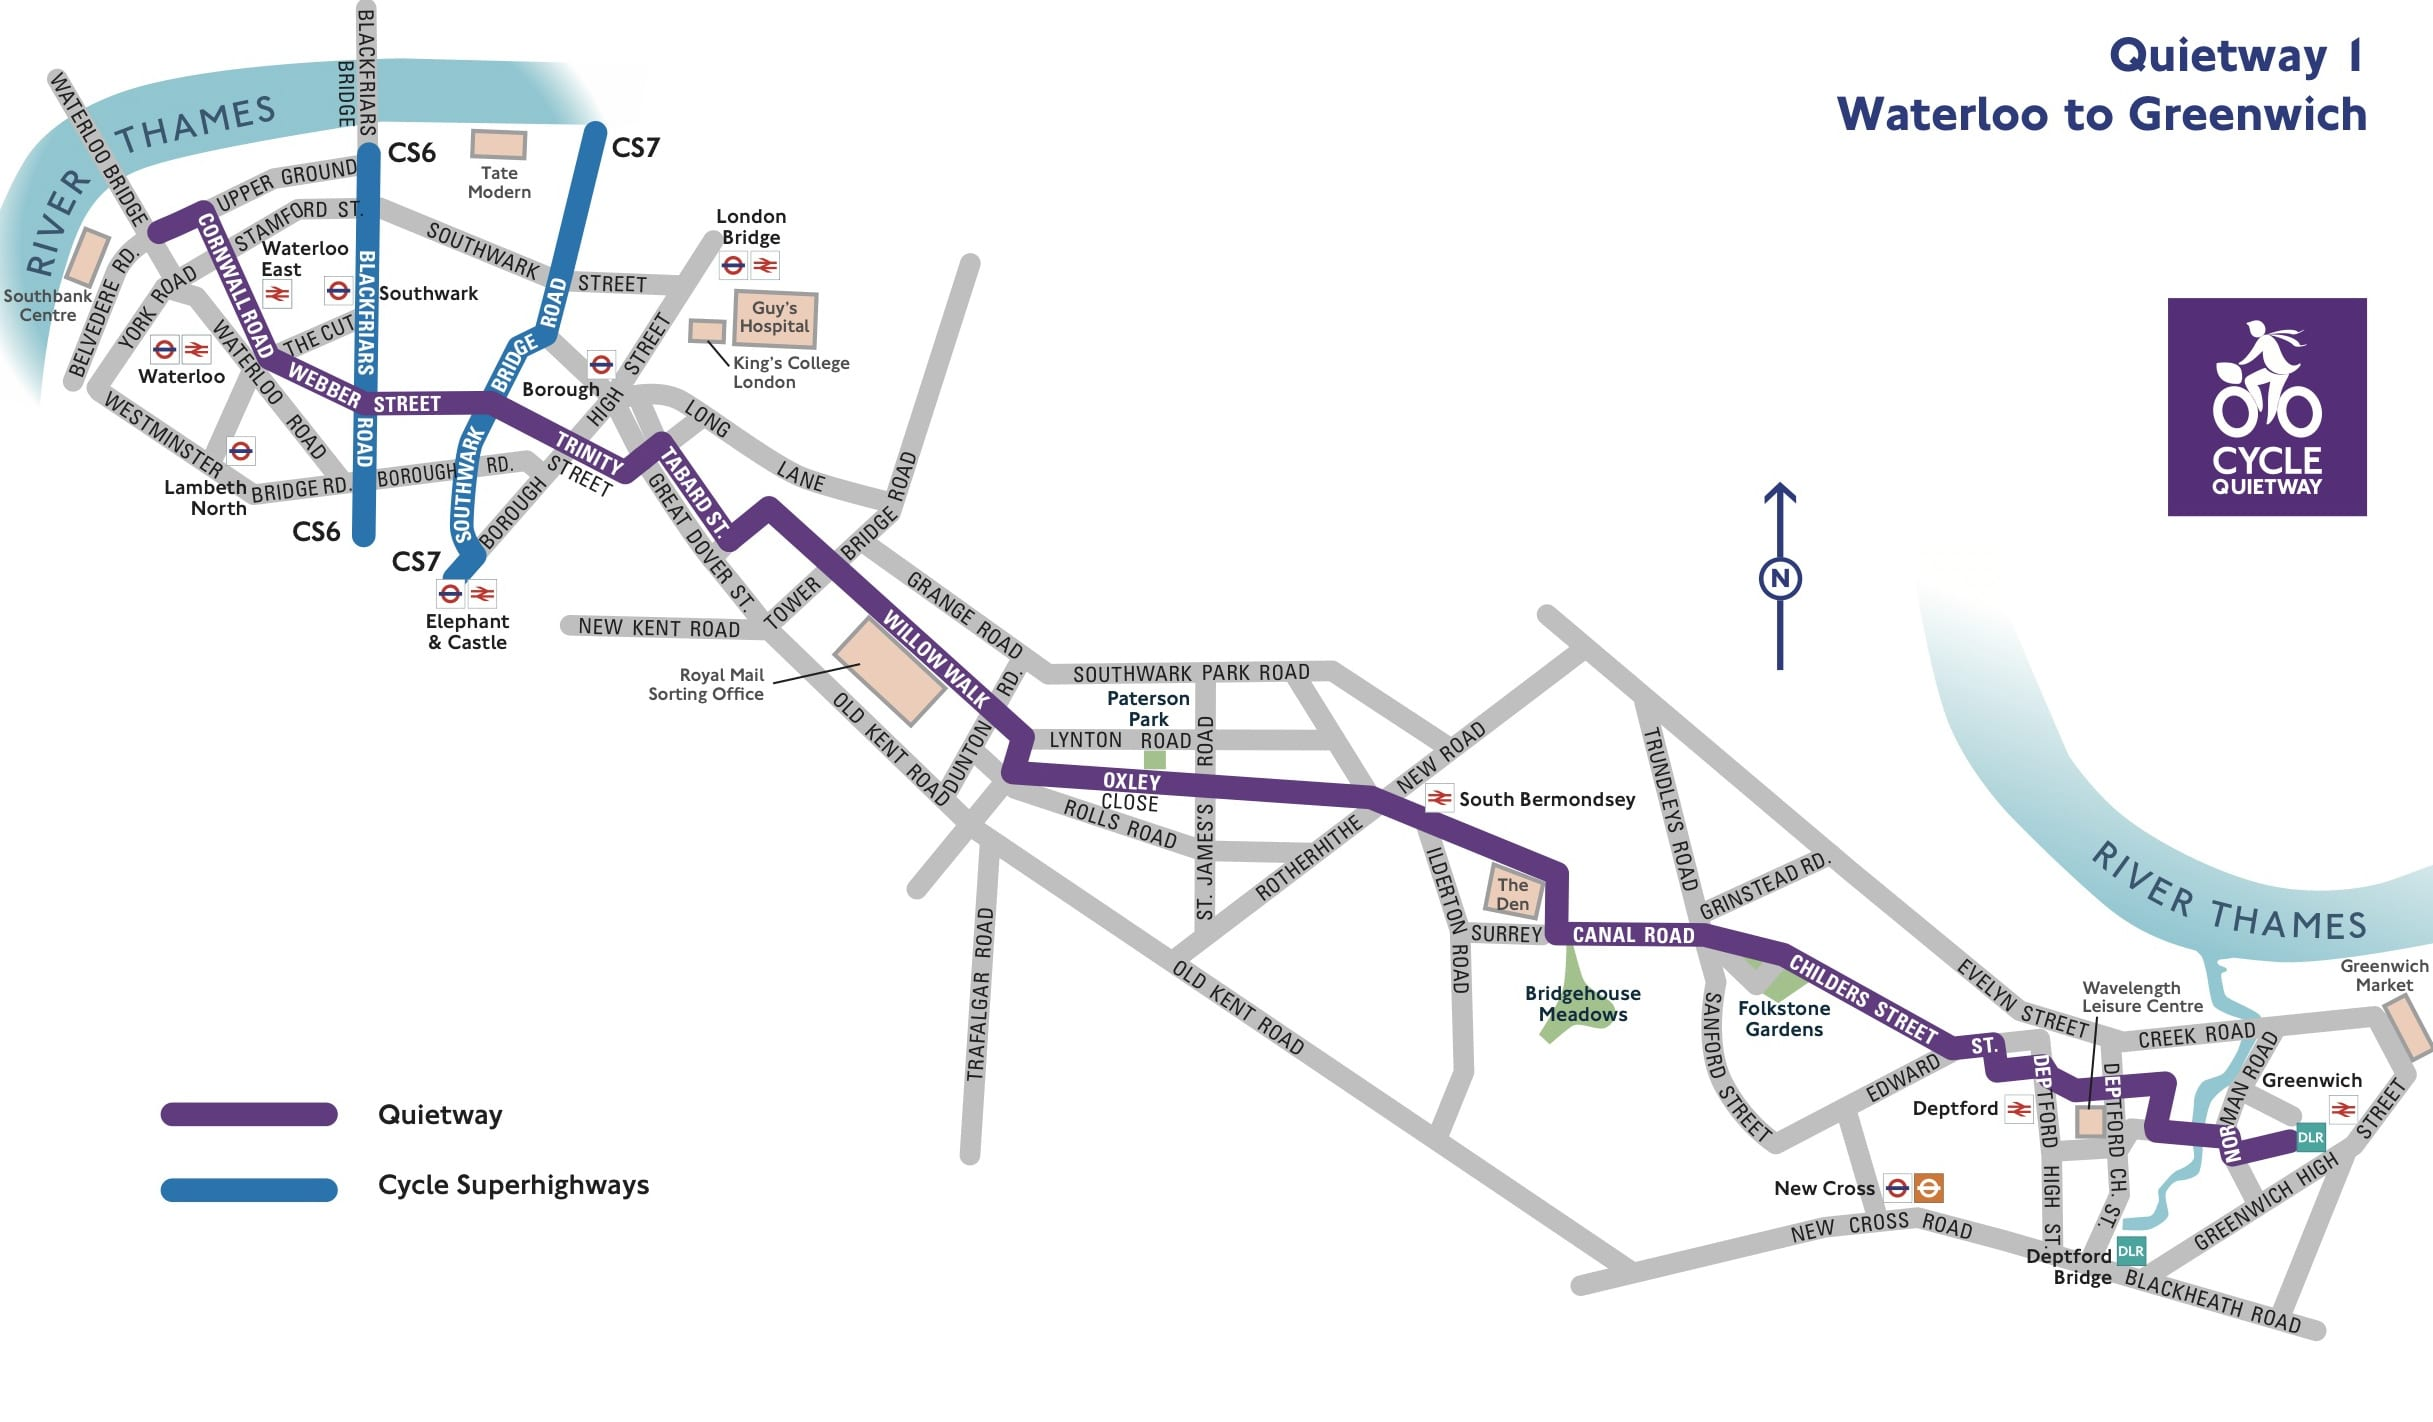 q1-waterloo-to-greenwich-map